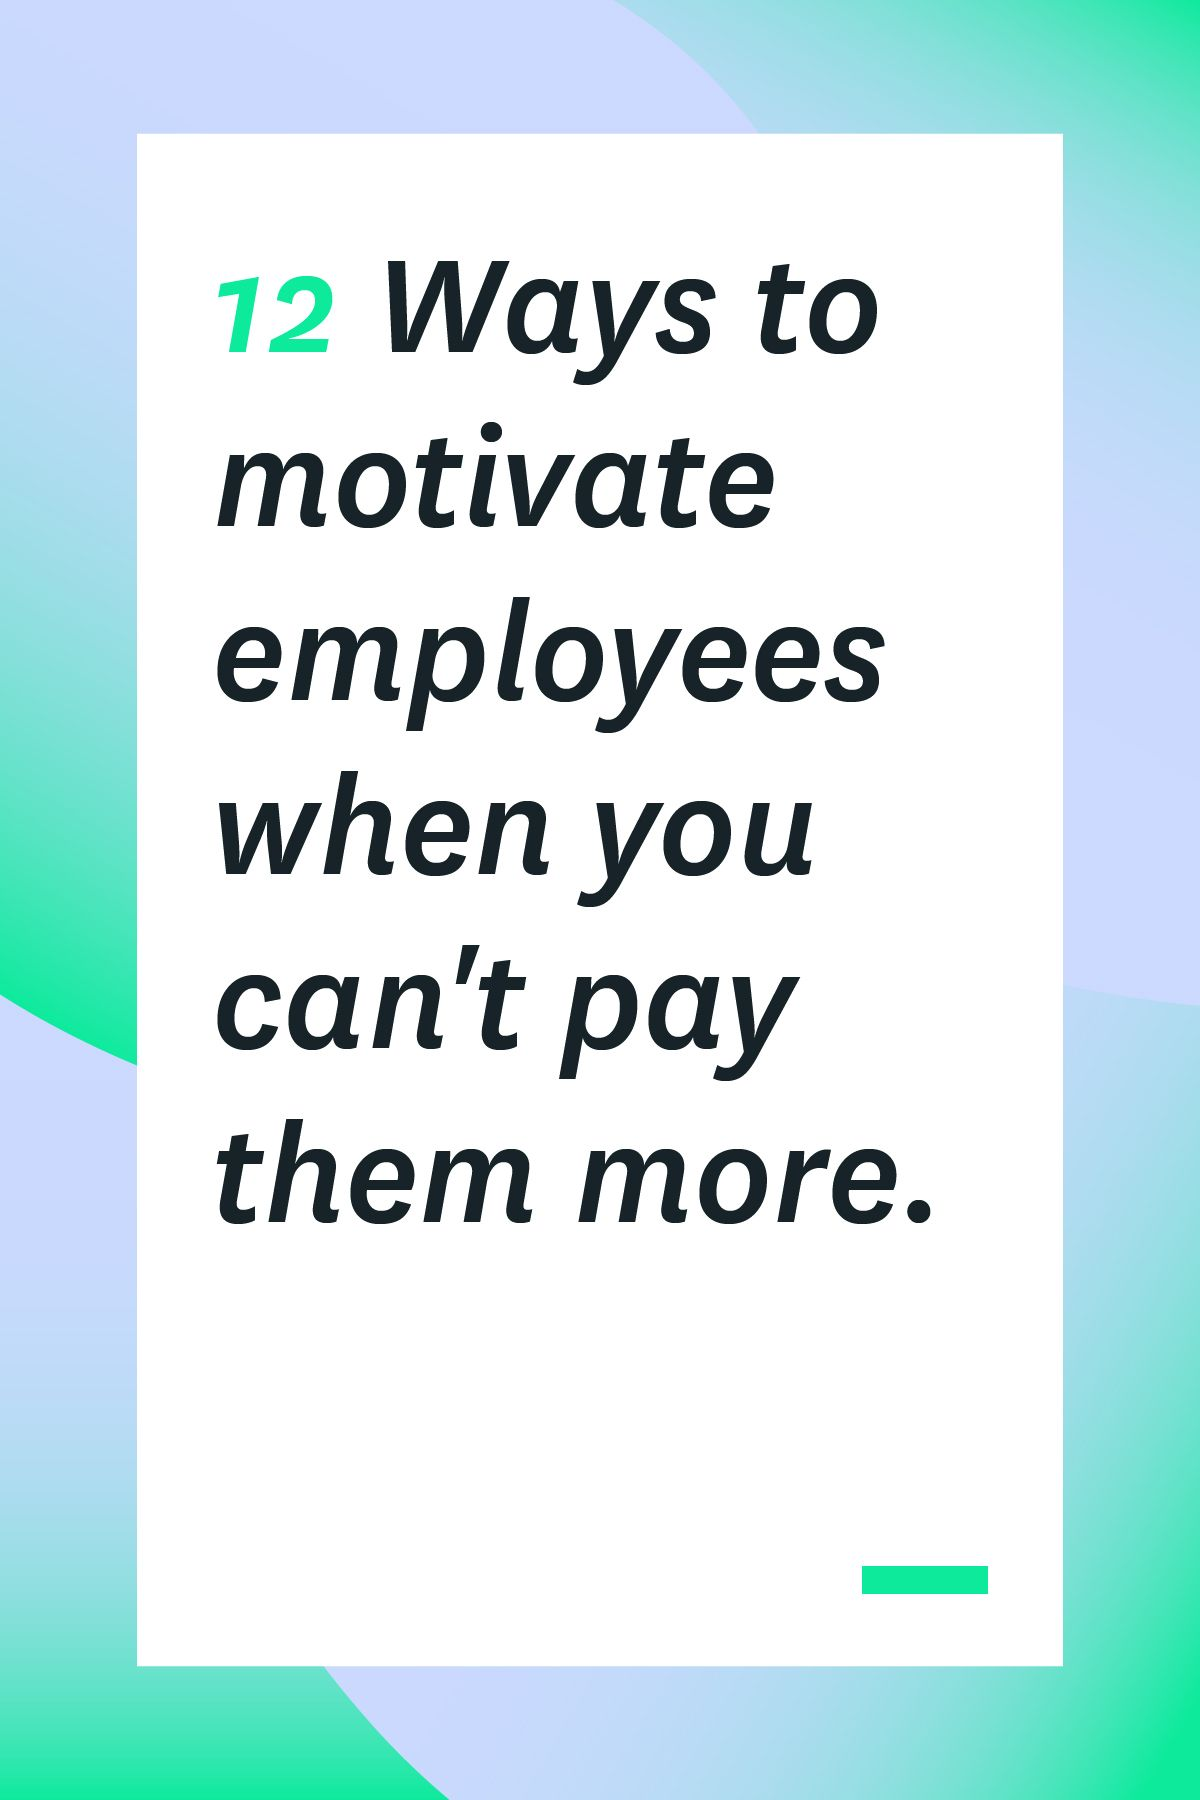 12 Ways to Motivate Employees When You Can't Pay Them More #employeeappreciationideas